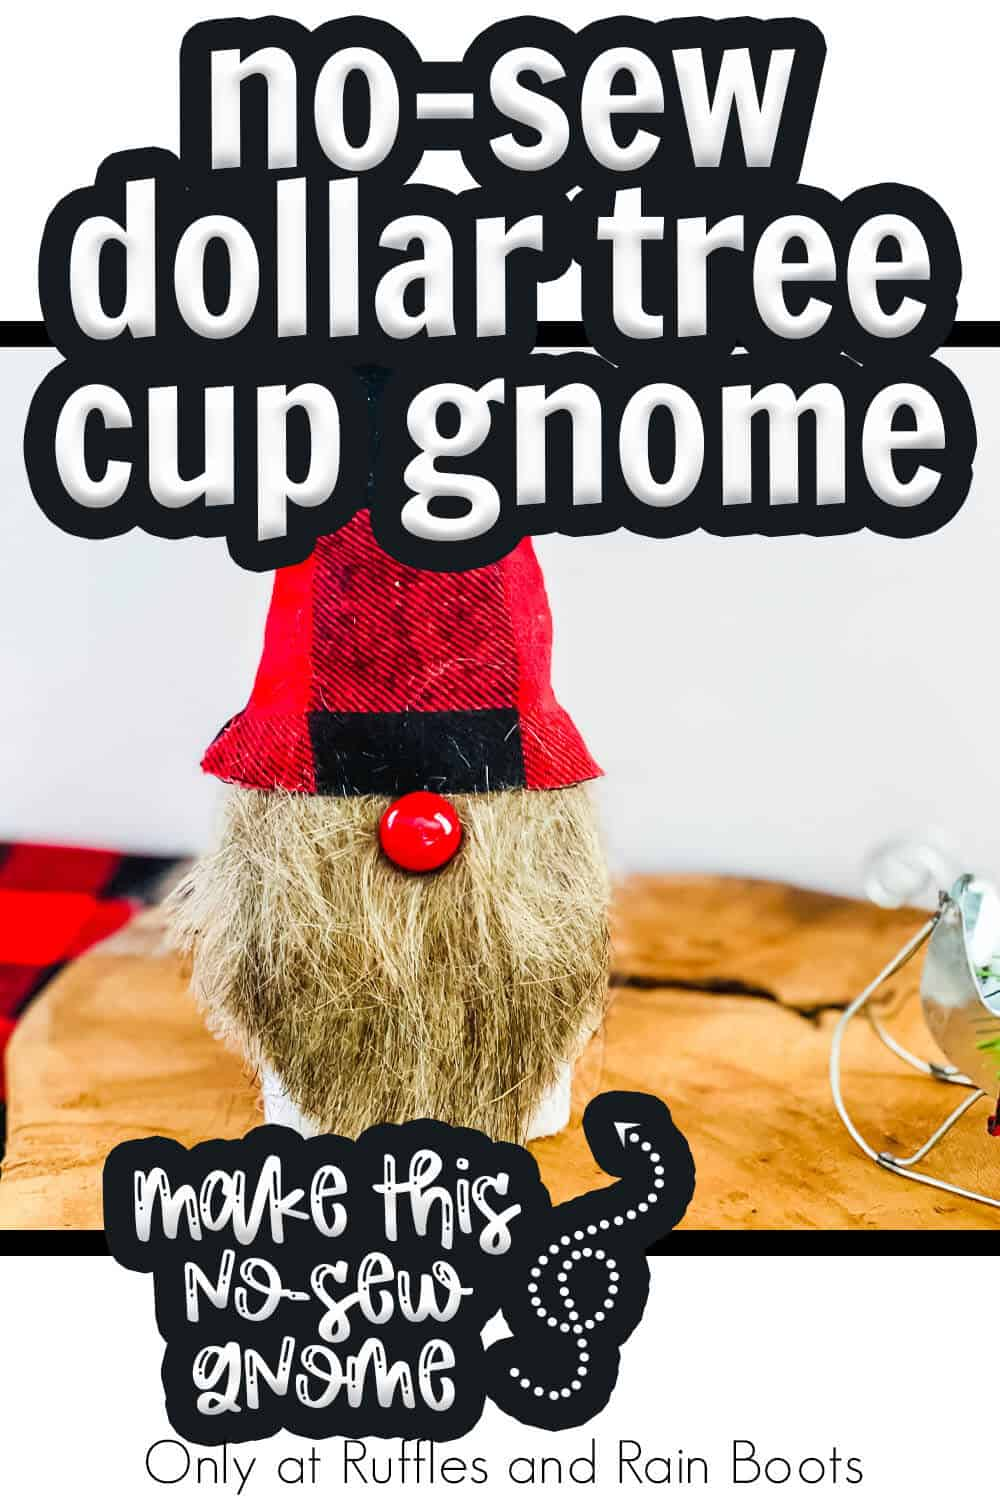 diy cup gnome craft with text which reads no-sew dollar tree cup gnome make this gnome in minutes